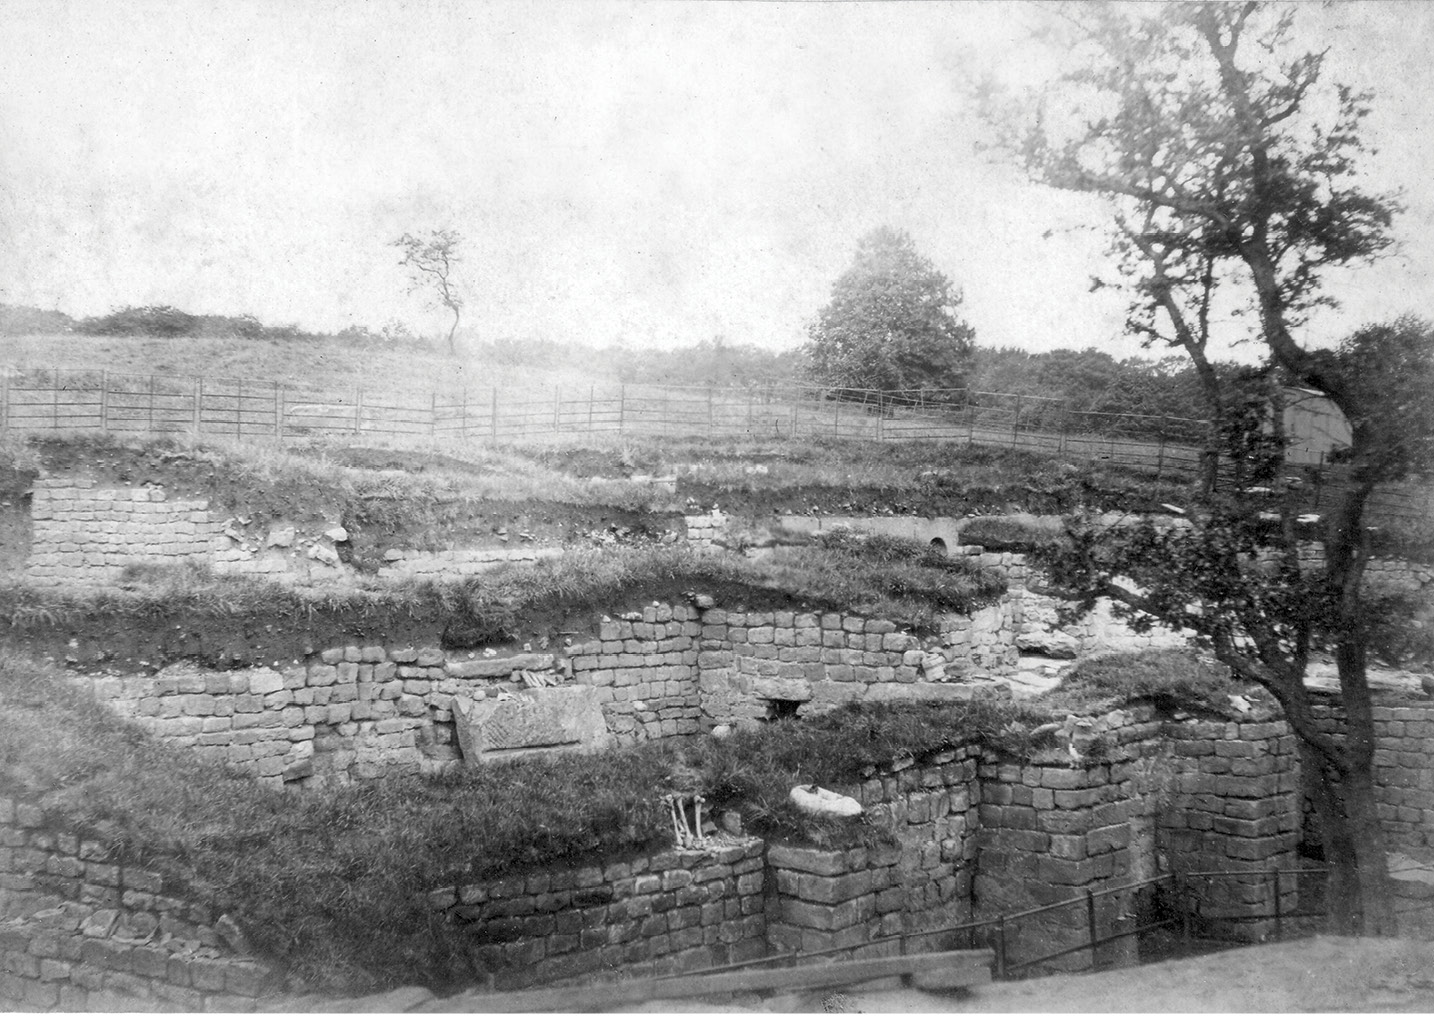 below A photograph of the bathhouse at Chesters fort, taken during excavations in 1885. In the foreground is the outer wall of a hot room, with human bones lying on it. Did these come from a cemetery beyond the bathhouse walls?